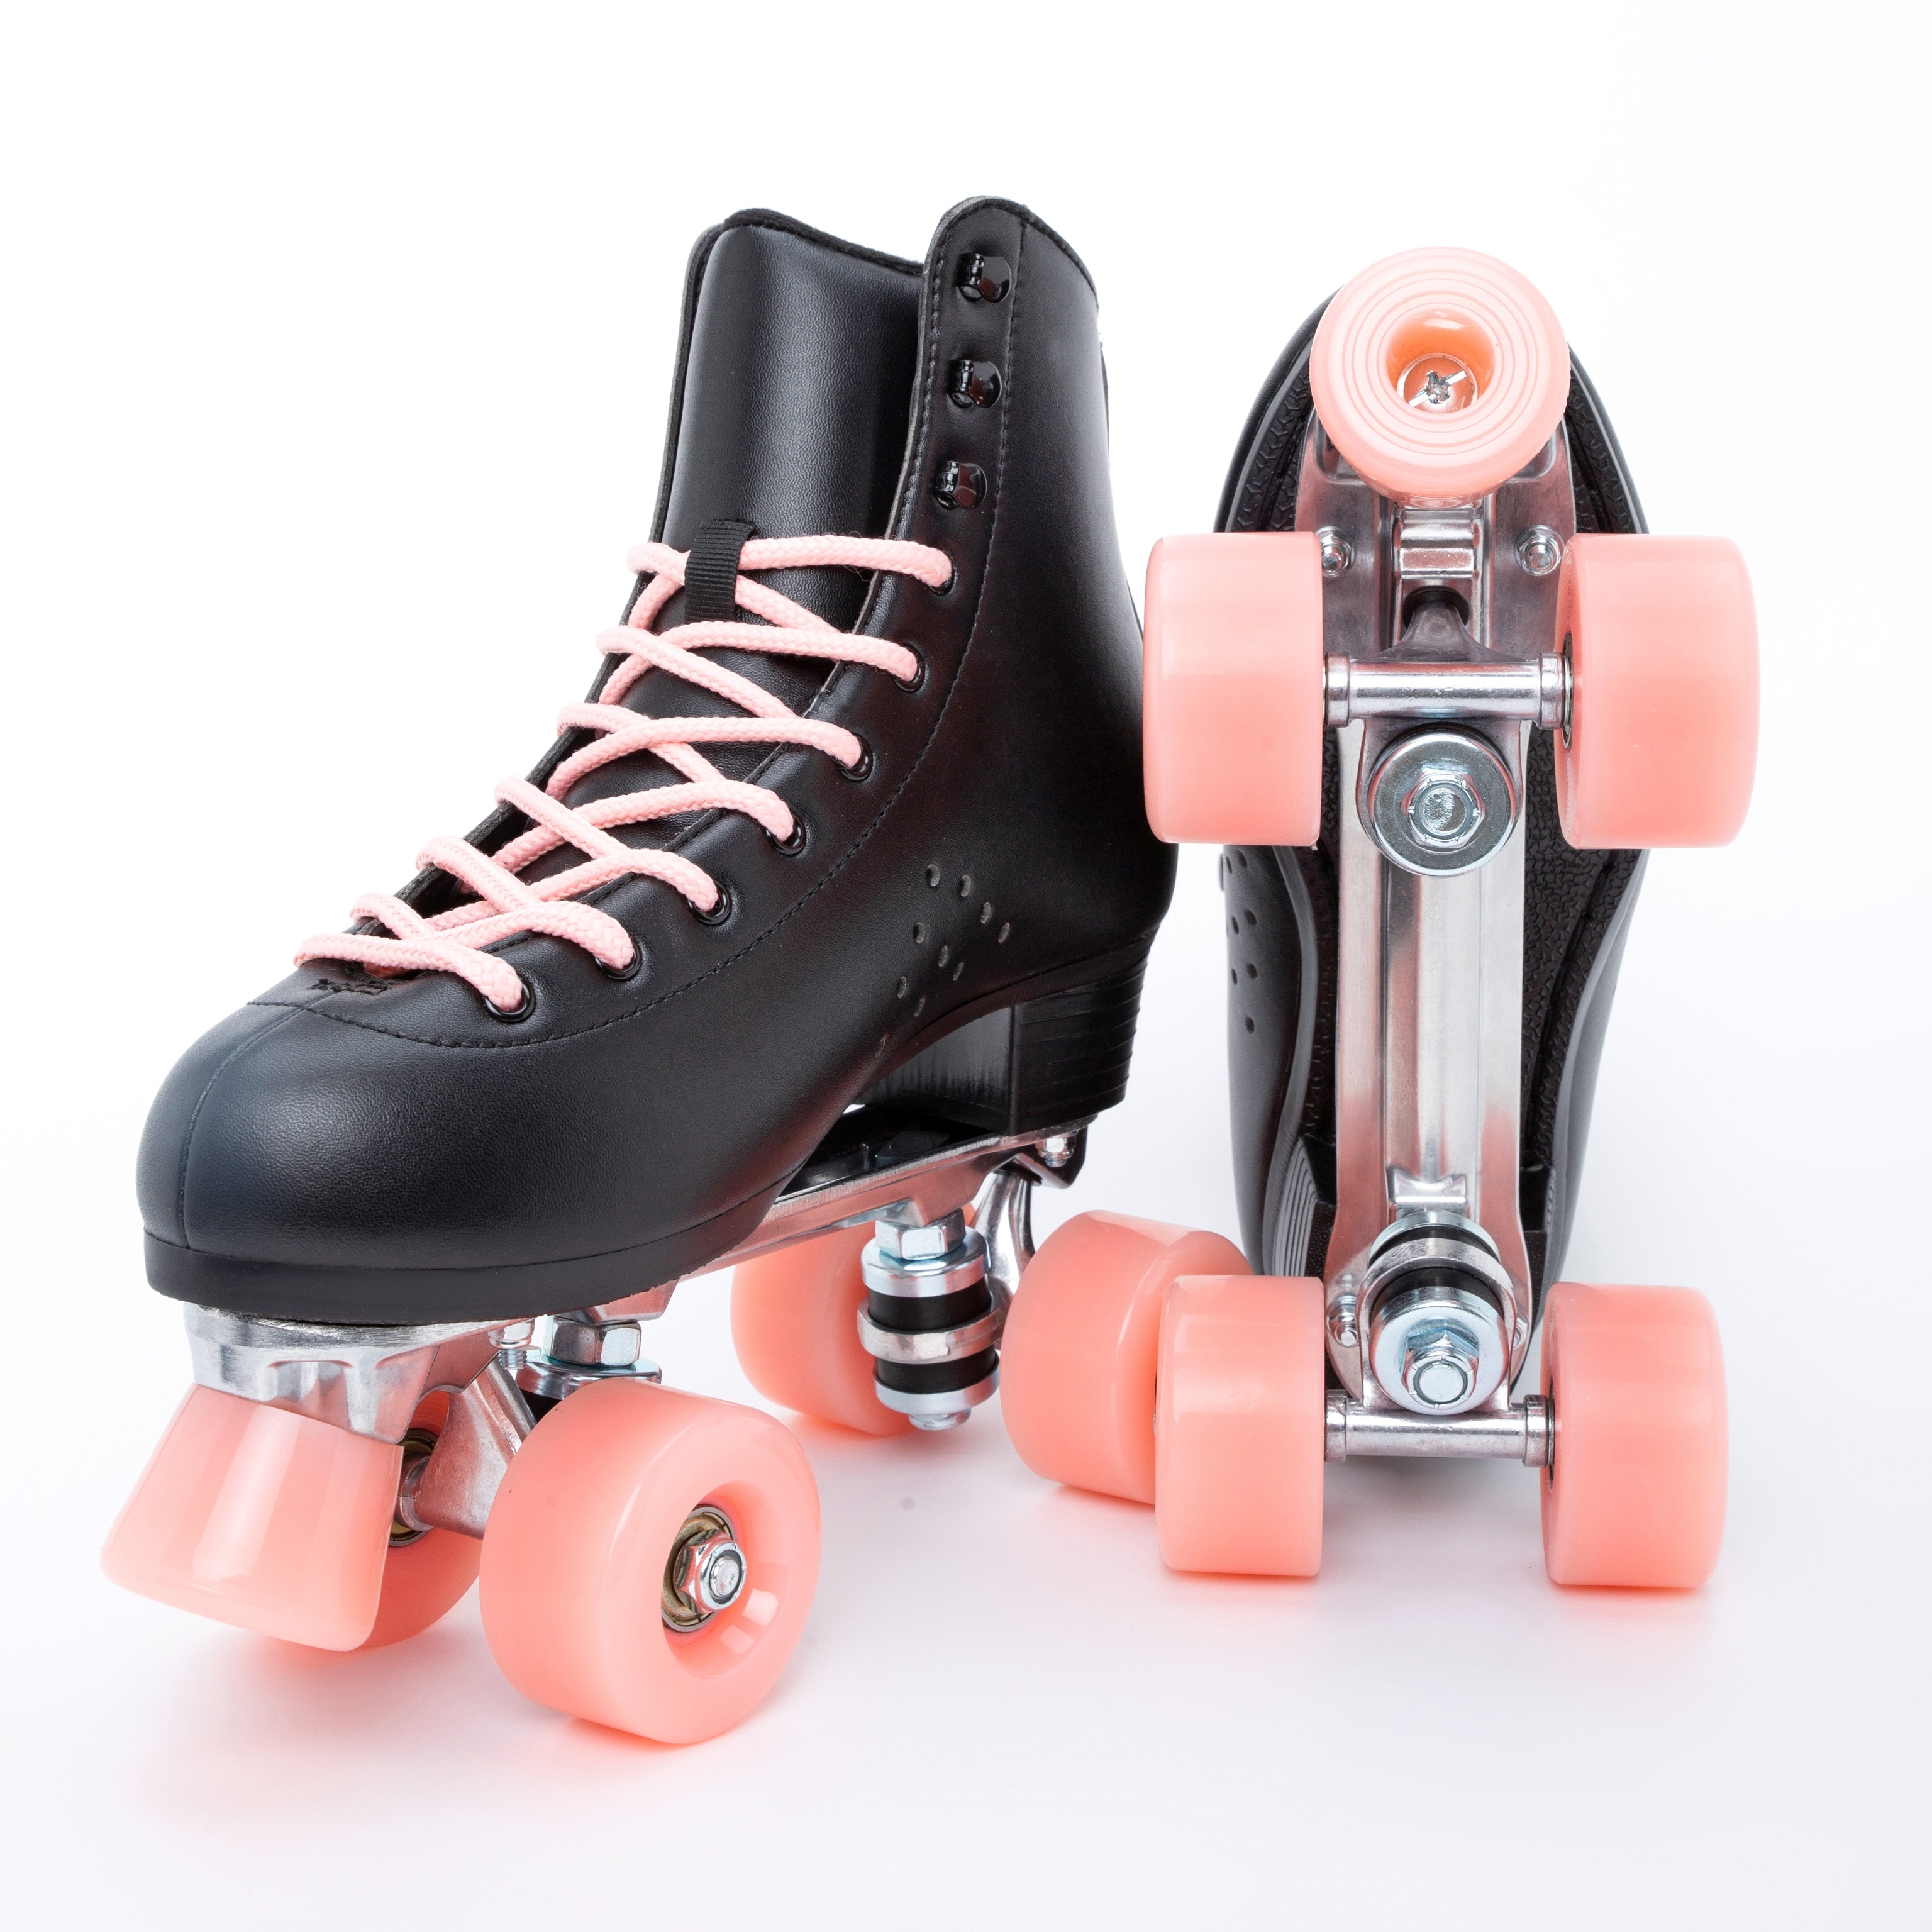 ANTIET Roller Skates For Women, All-Steel Base PU Leather Classic Double-Row Roller Skates, Suitable For Indoor And Outdoor